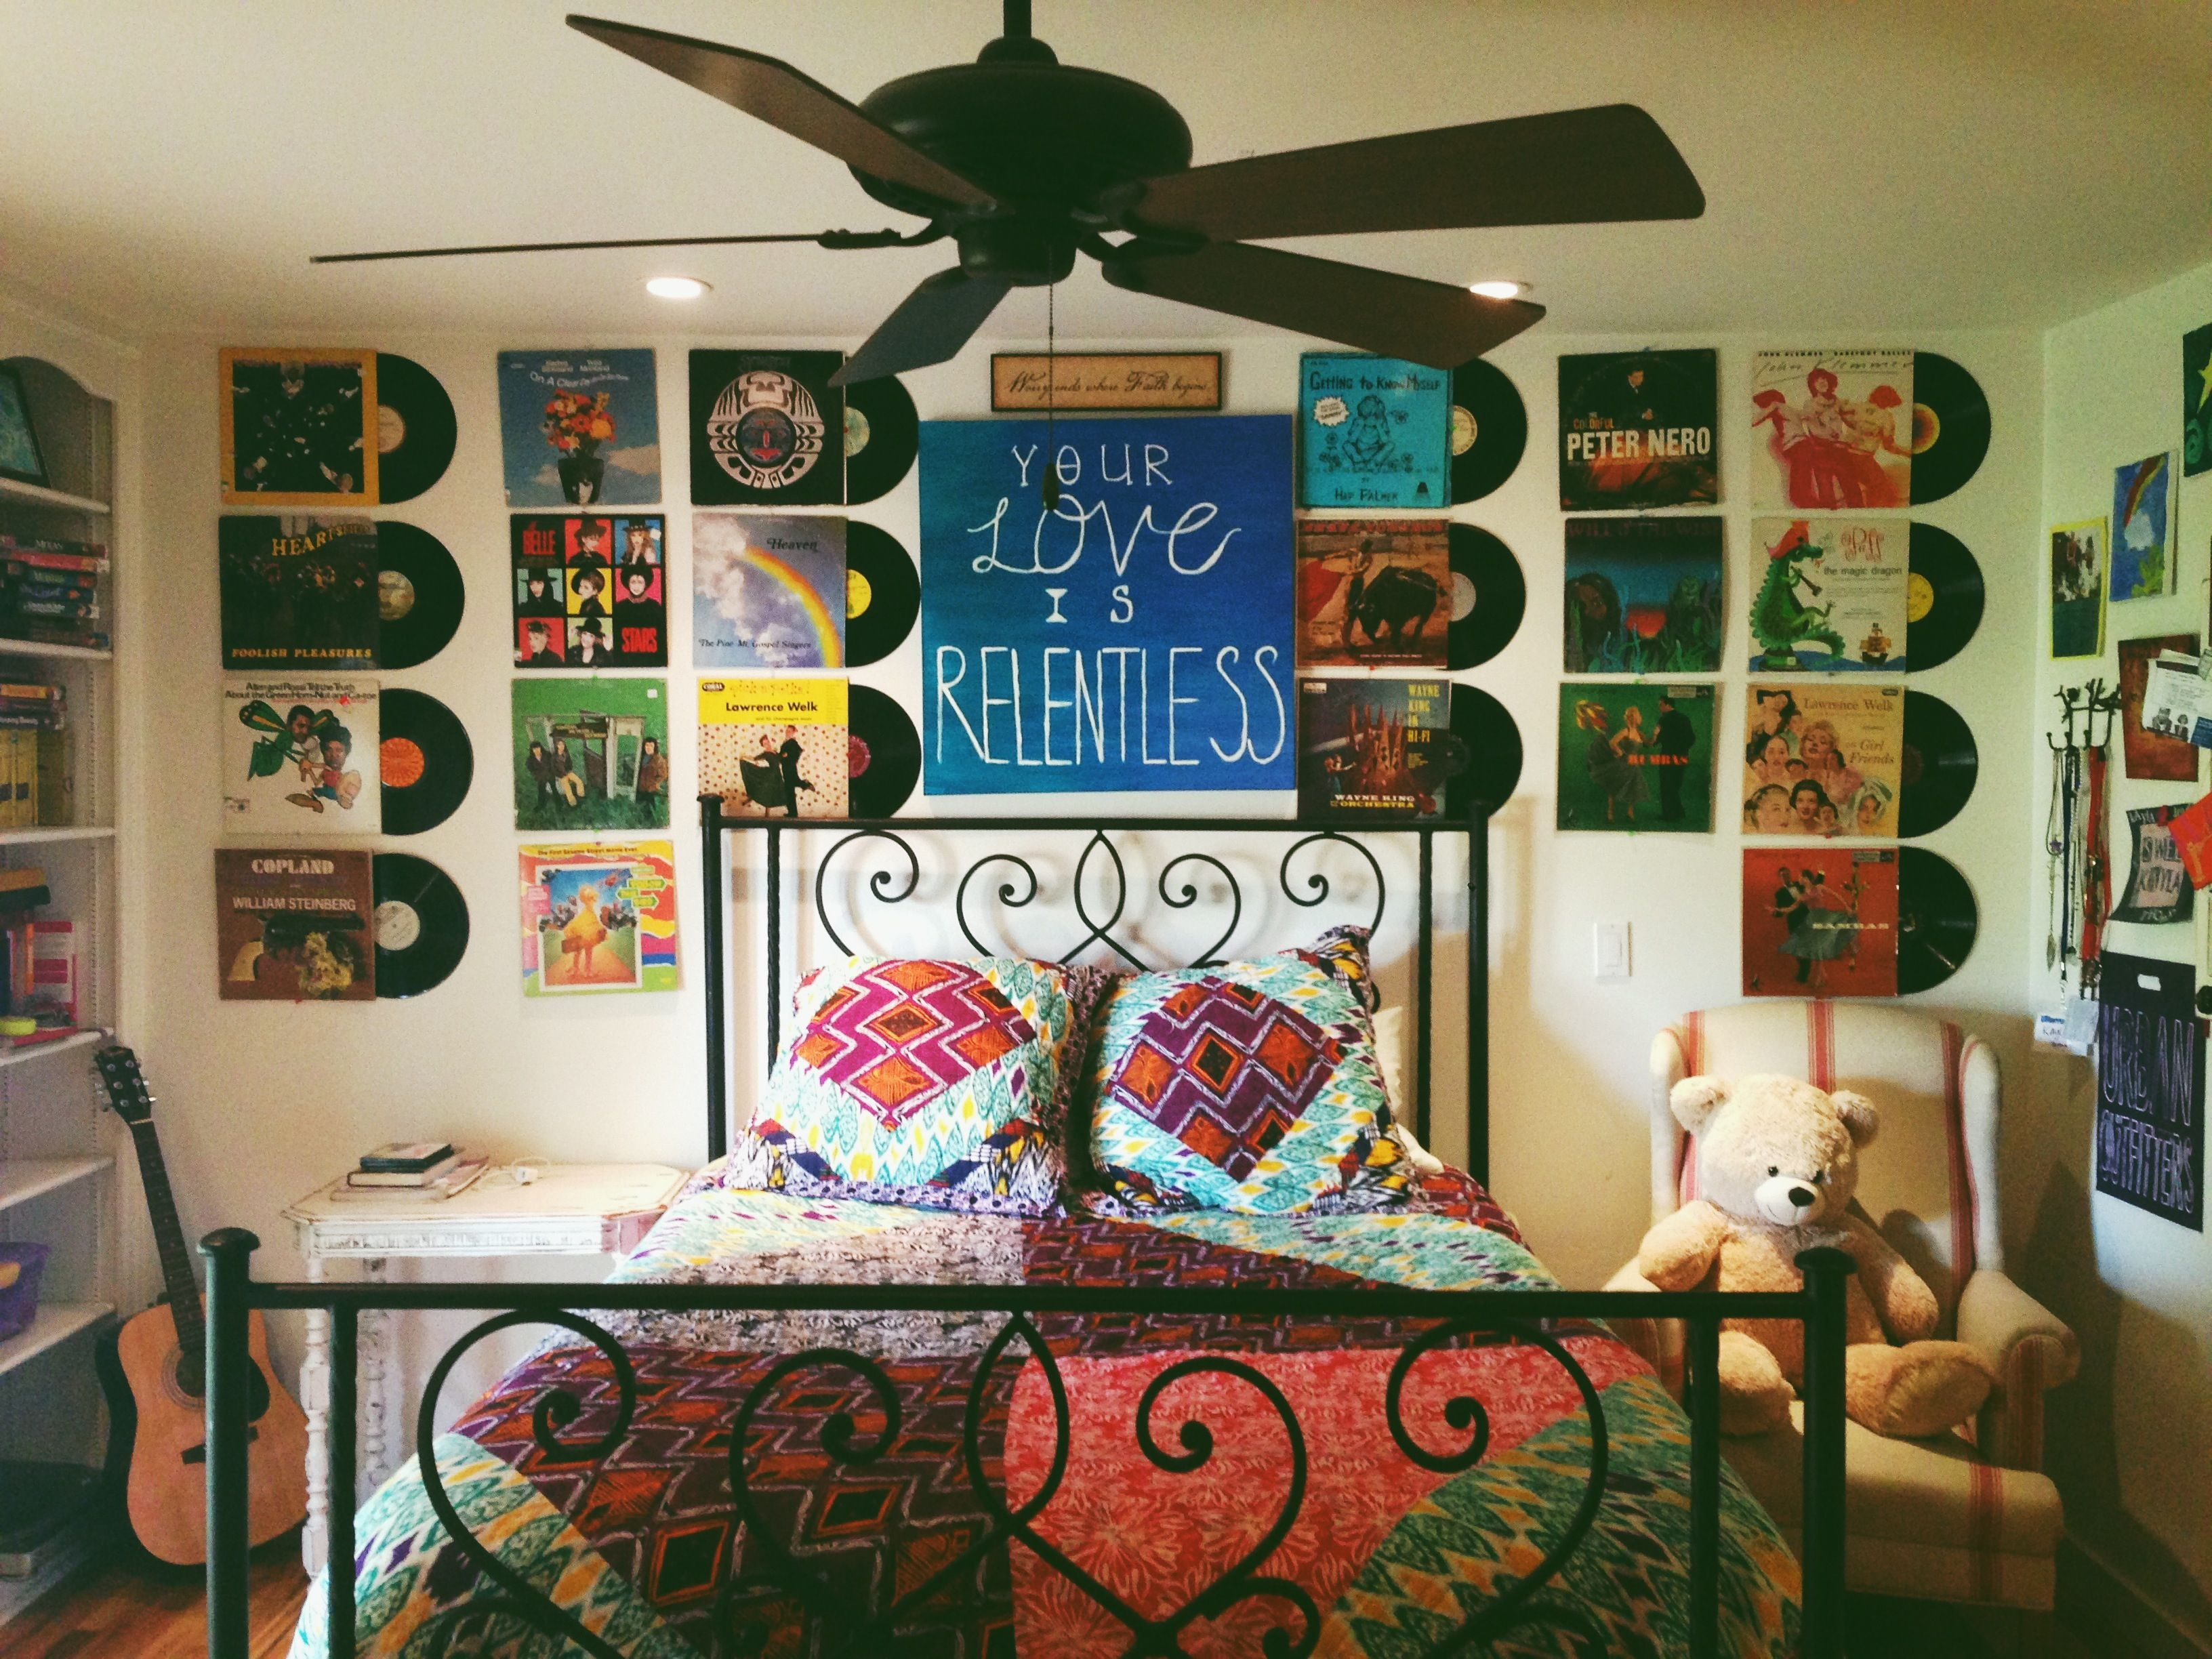 My Bedroom Was Covered In Art And Old Vinyl Records Now It S Just A Bunch Of Blank White Walls